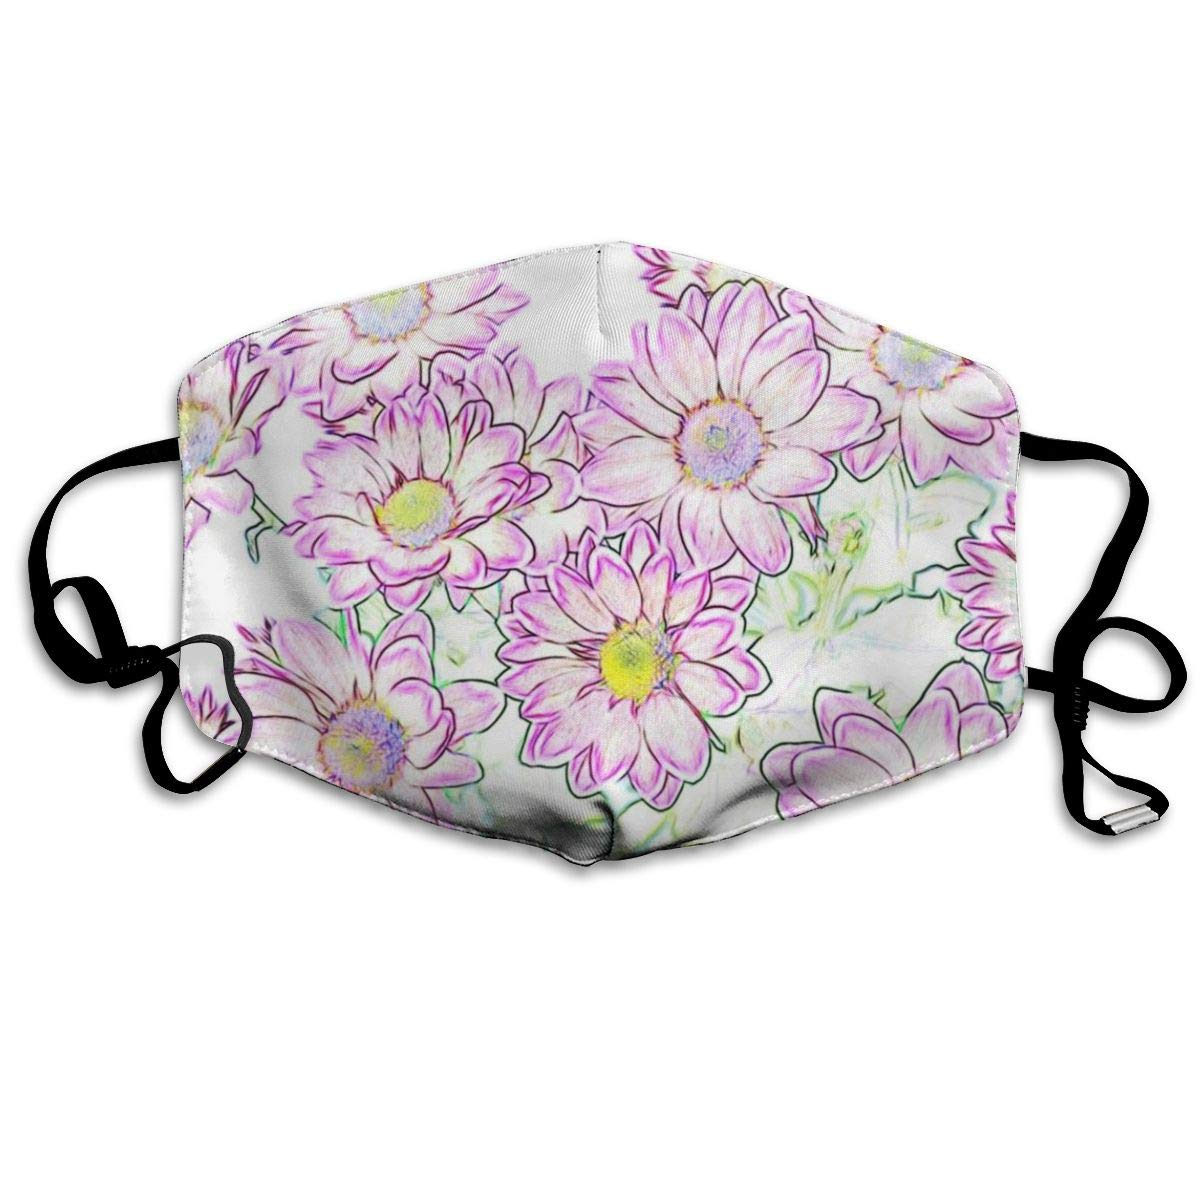 Mouth Mask Pink Hand Painted Flower Print Masks - Breathable Adjustable Windproof Mouth-Muffle, Camping Running For Women And